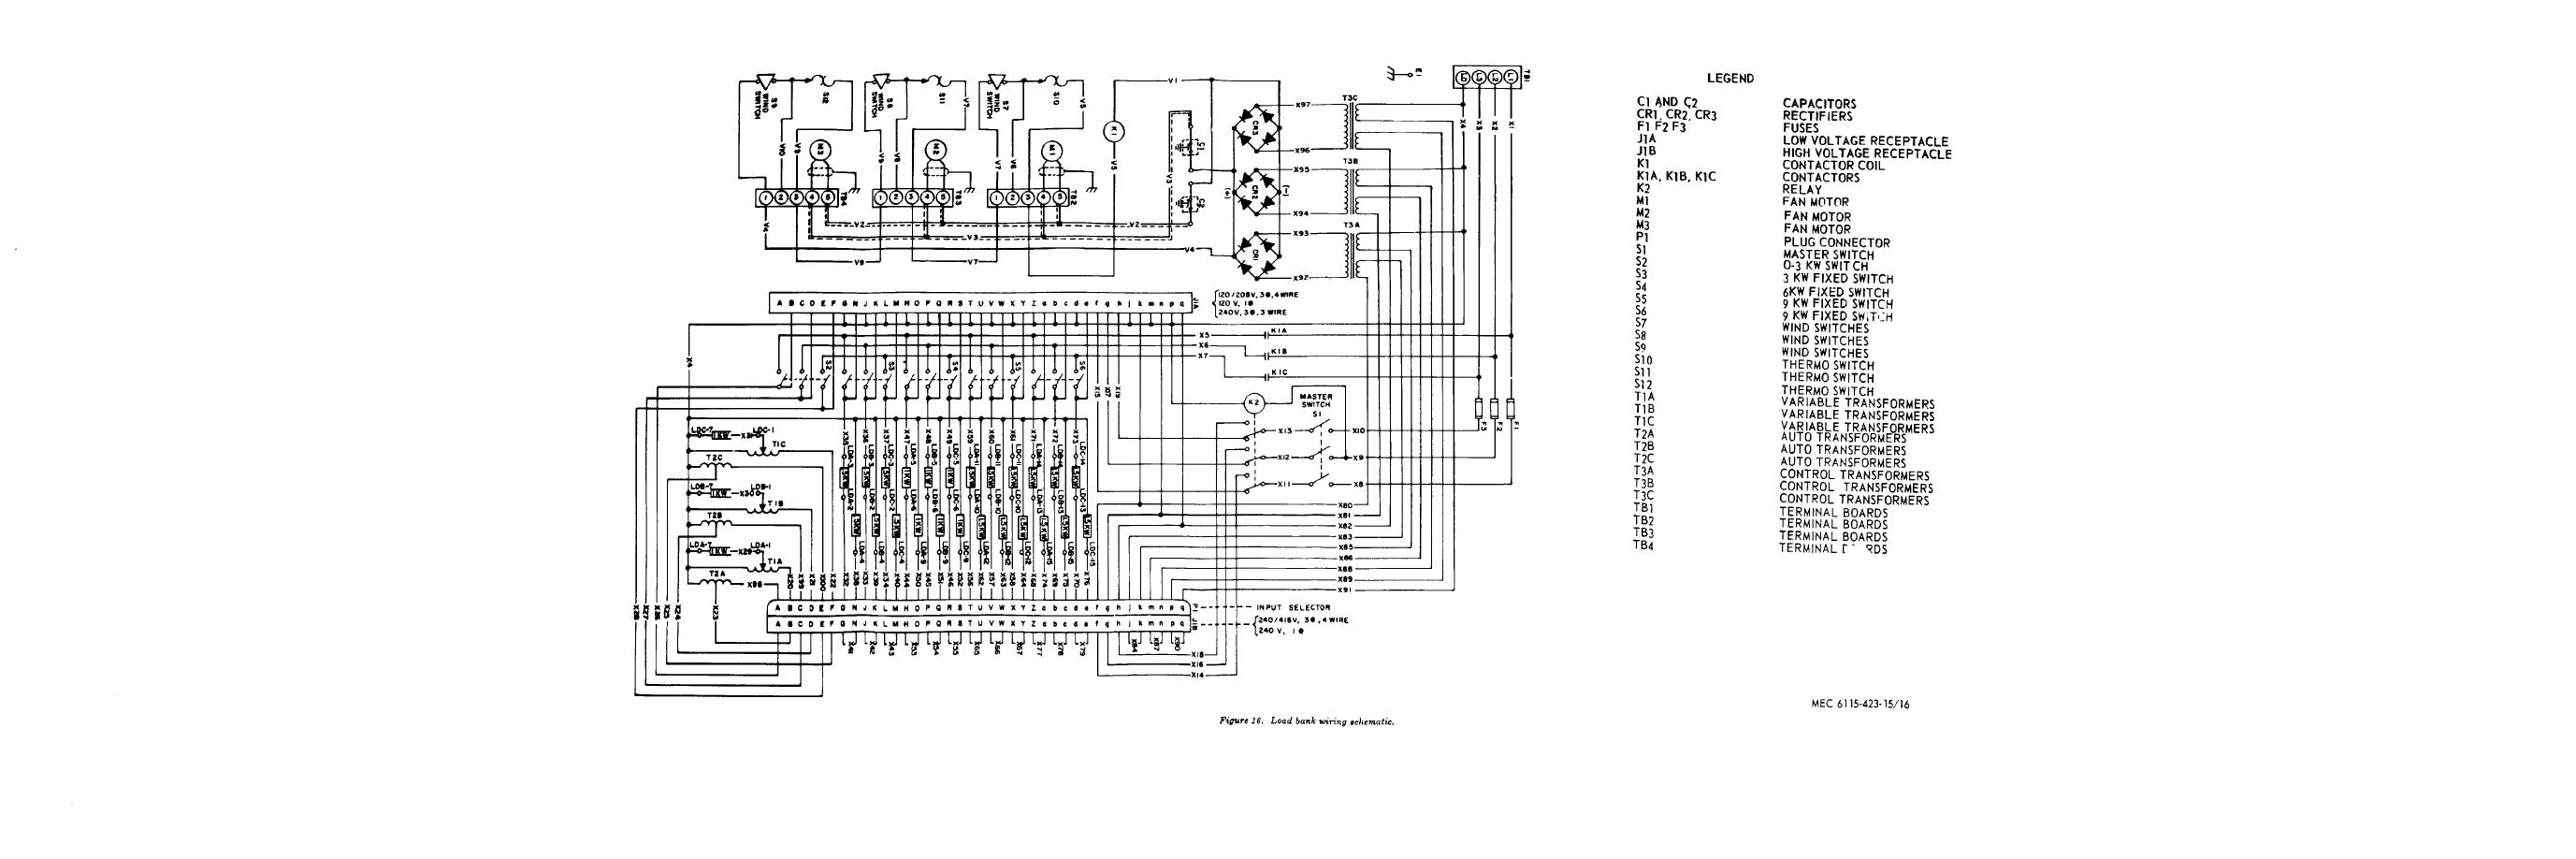 Figure 16. Load bank wiring diagram schematic on